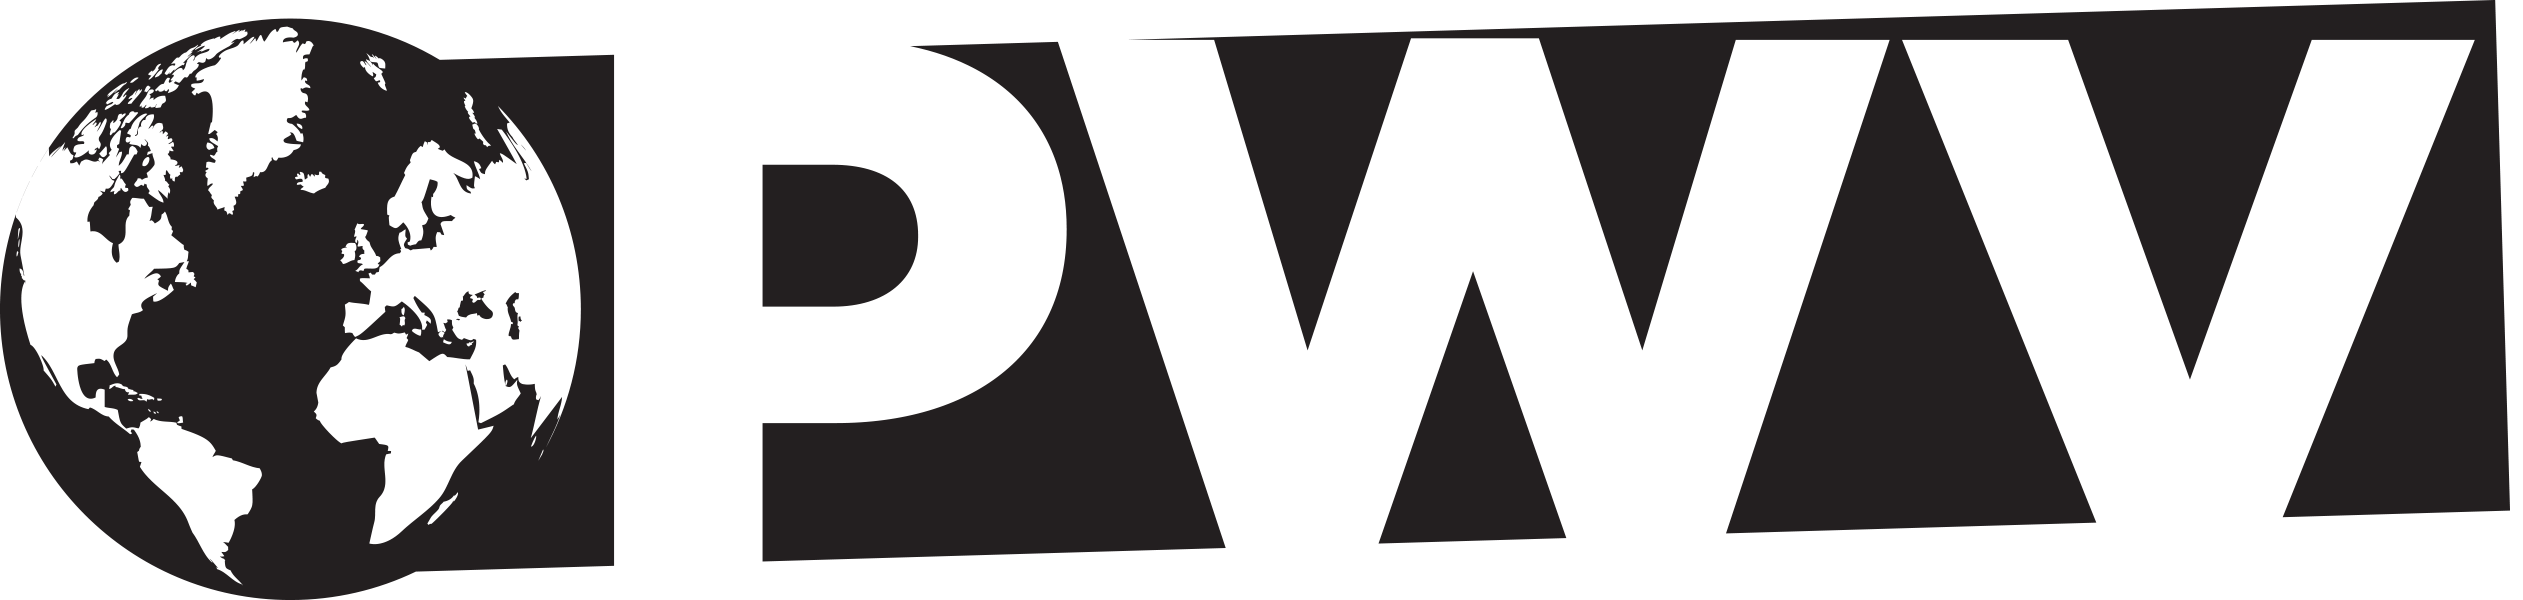 PWV-Sunglasses Logo